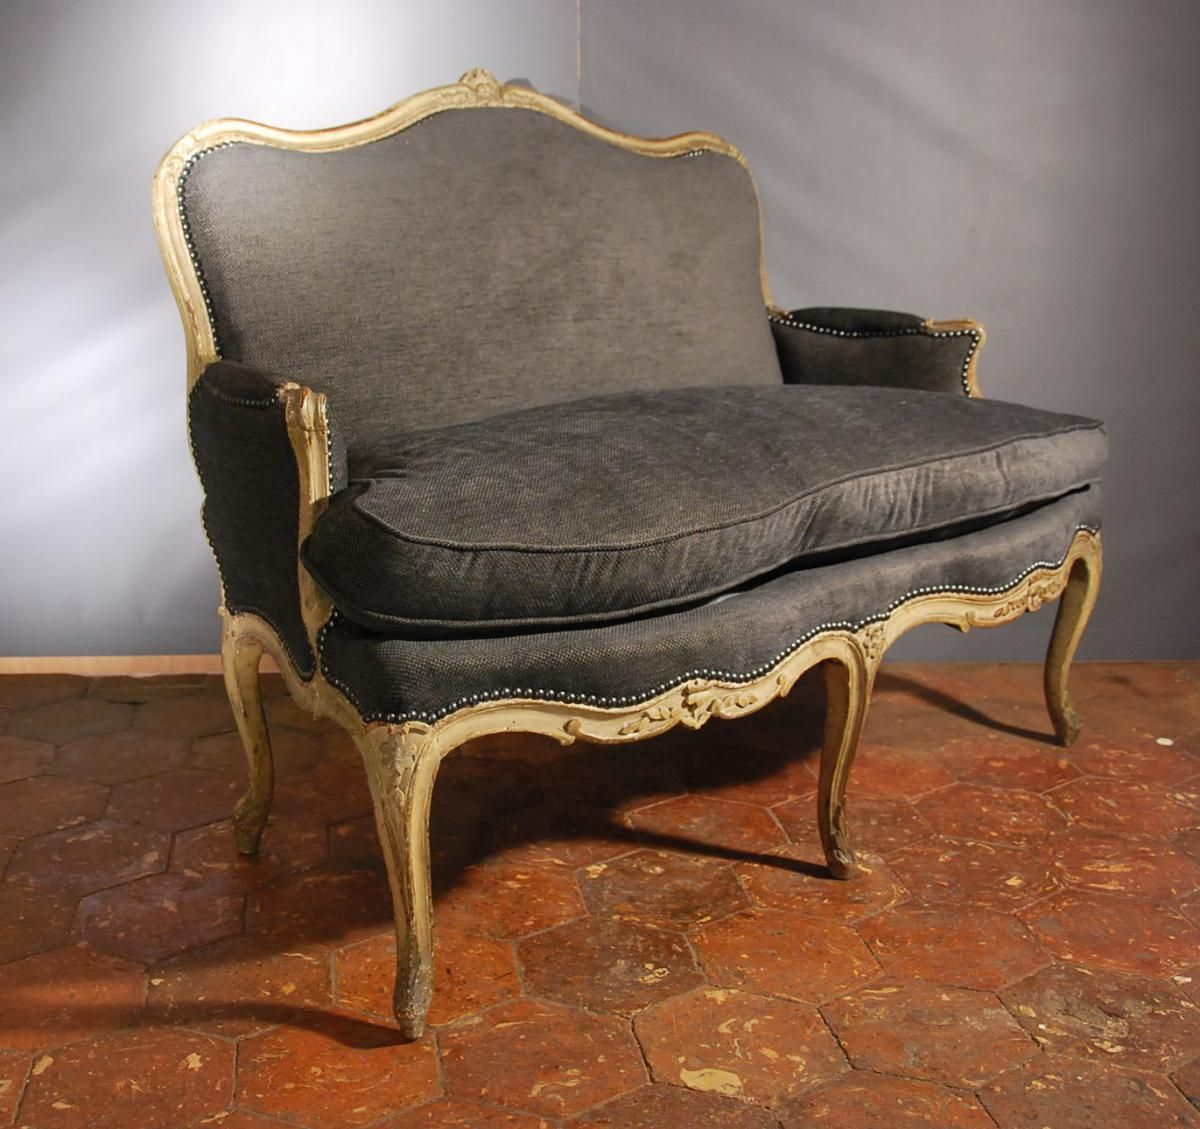 canap poque louis xv 18 me si cle antiquit lassaussois. Black Bedroom Furniture Sets. Home Design Ideas